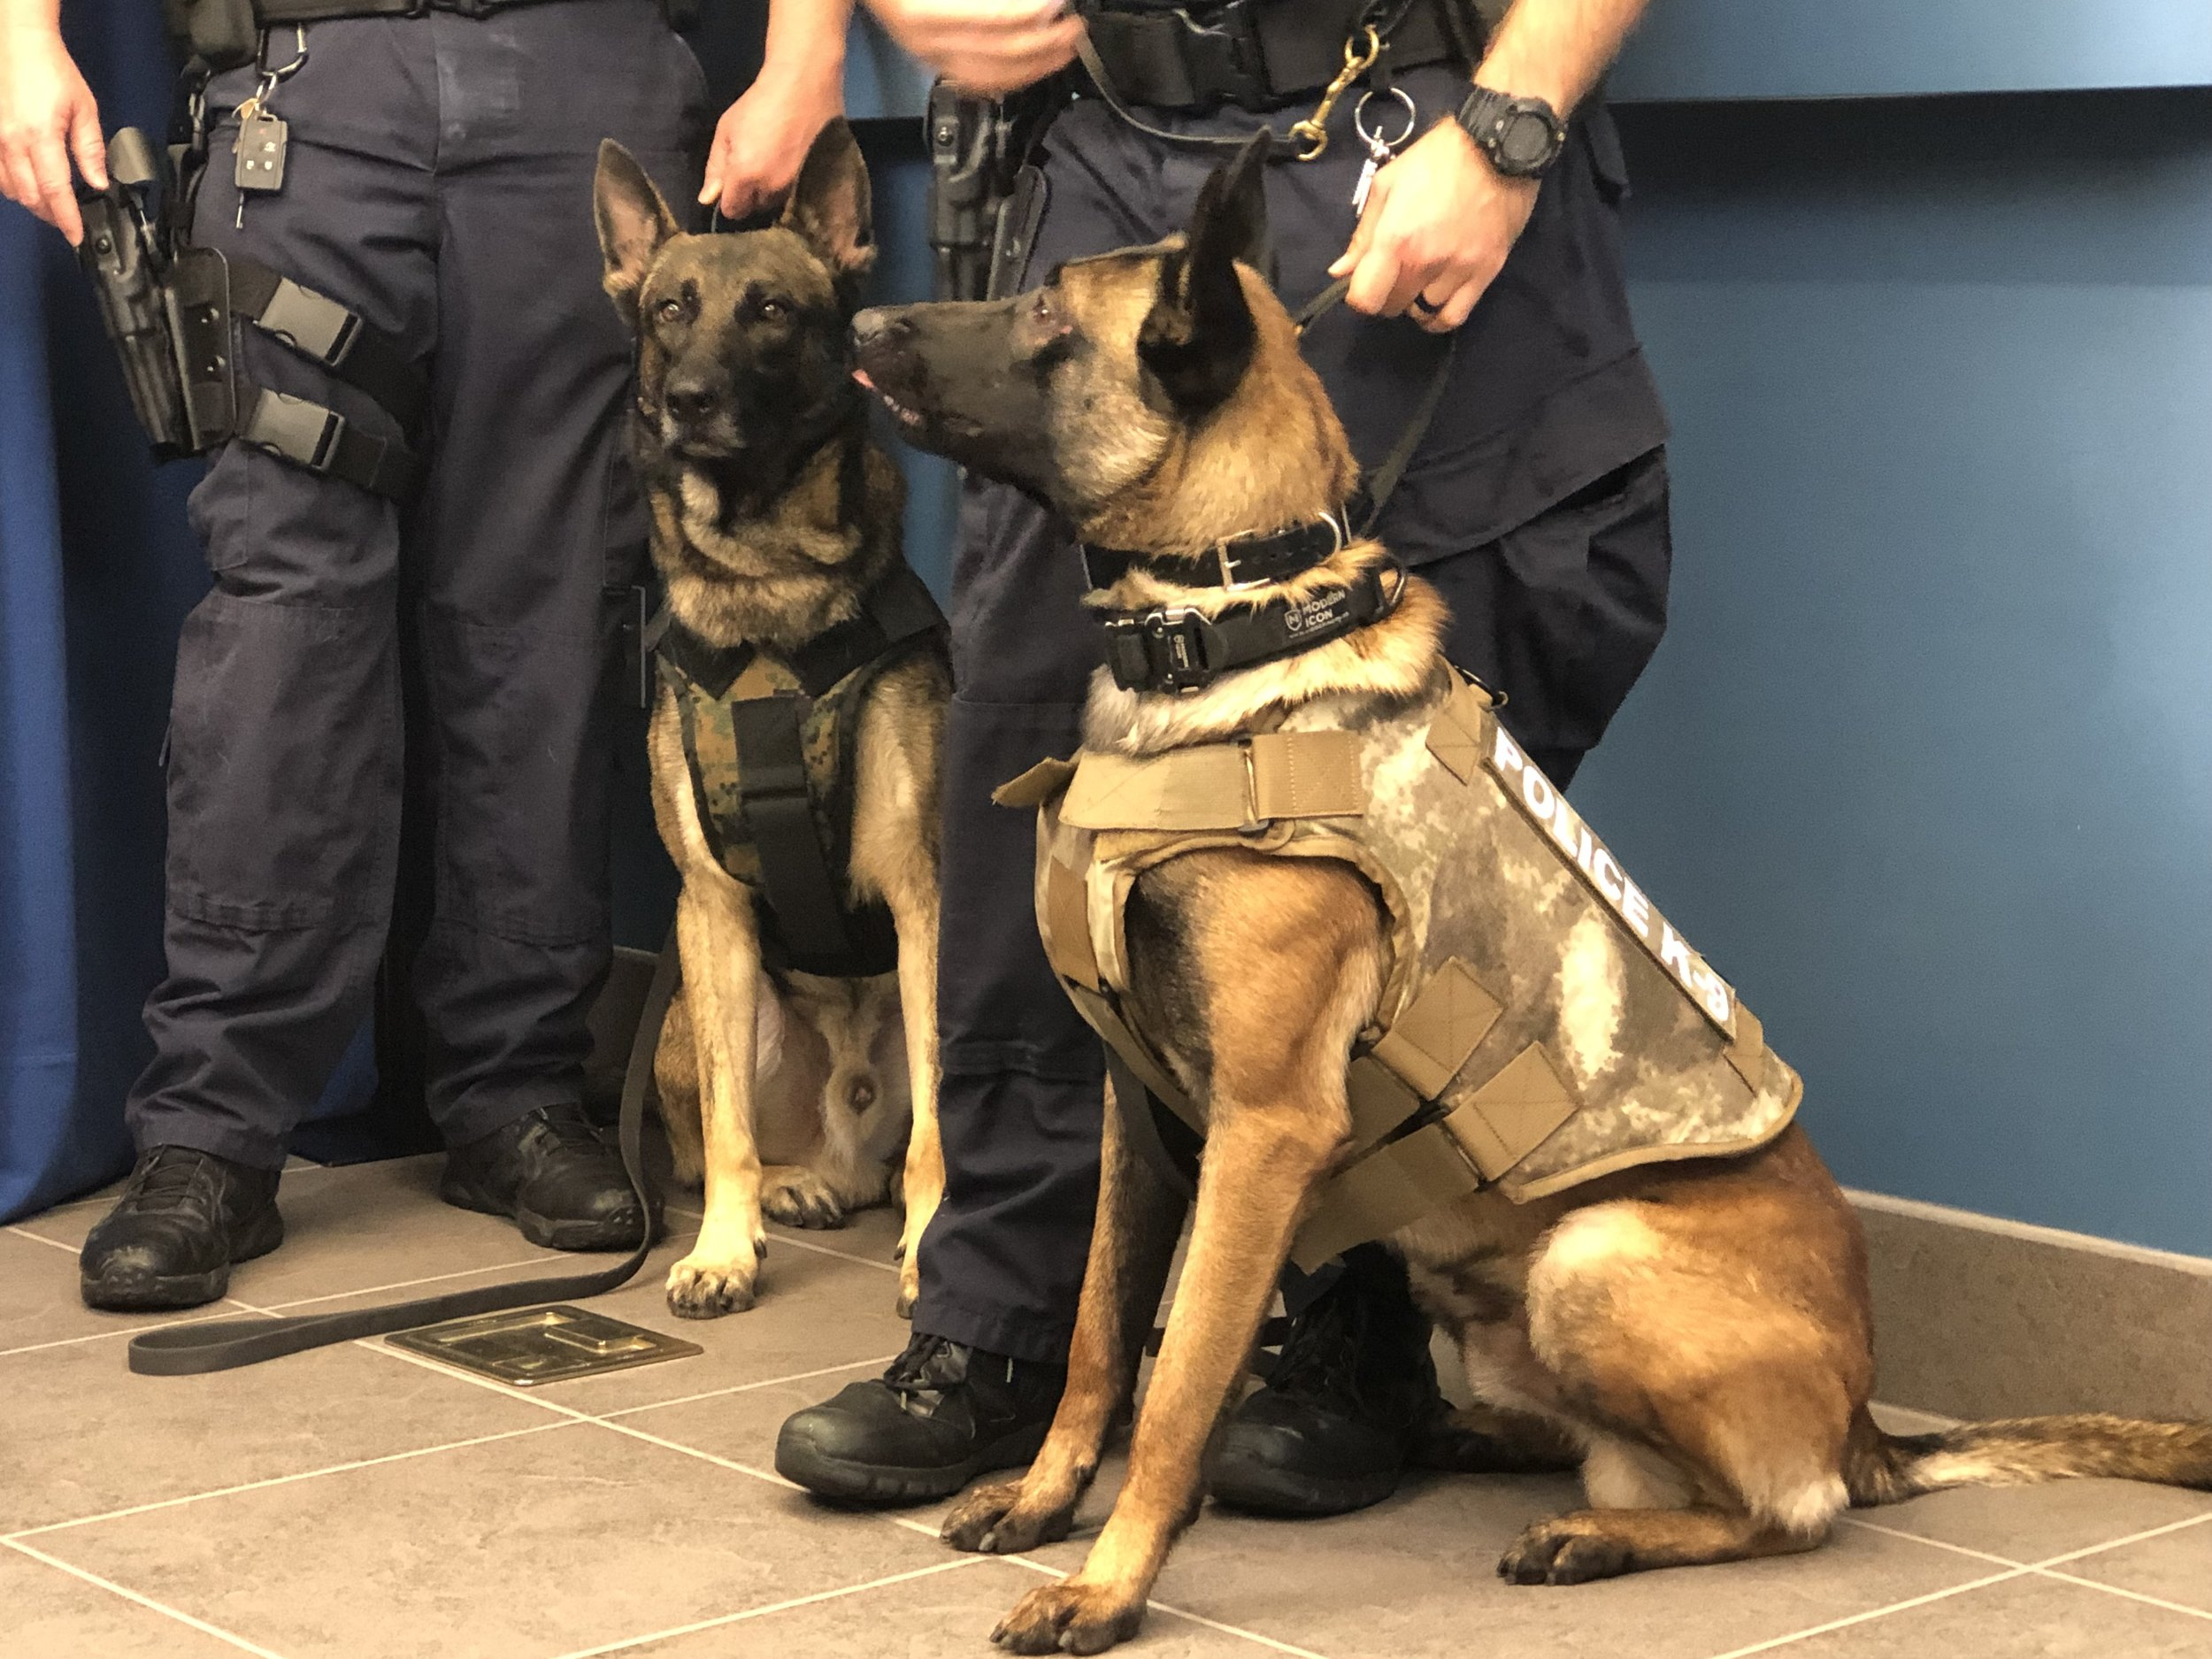 K9 Dallas and K9 Jax sporting their new vests.